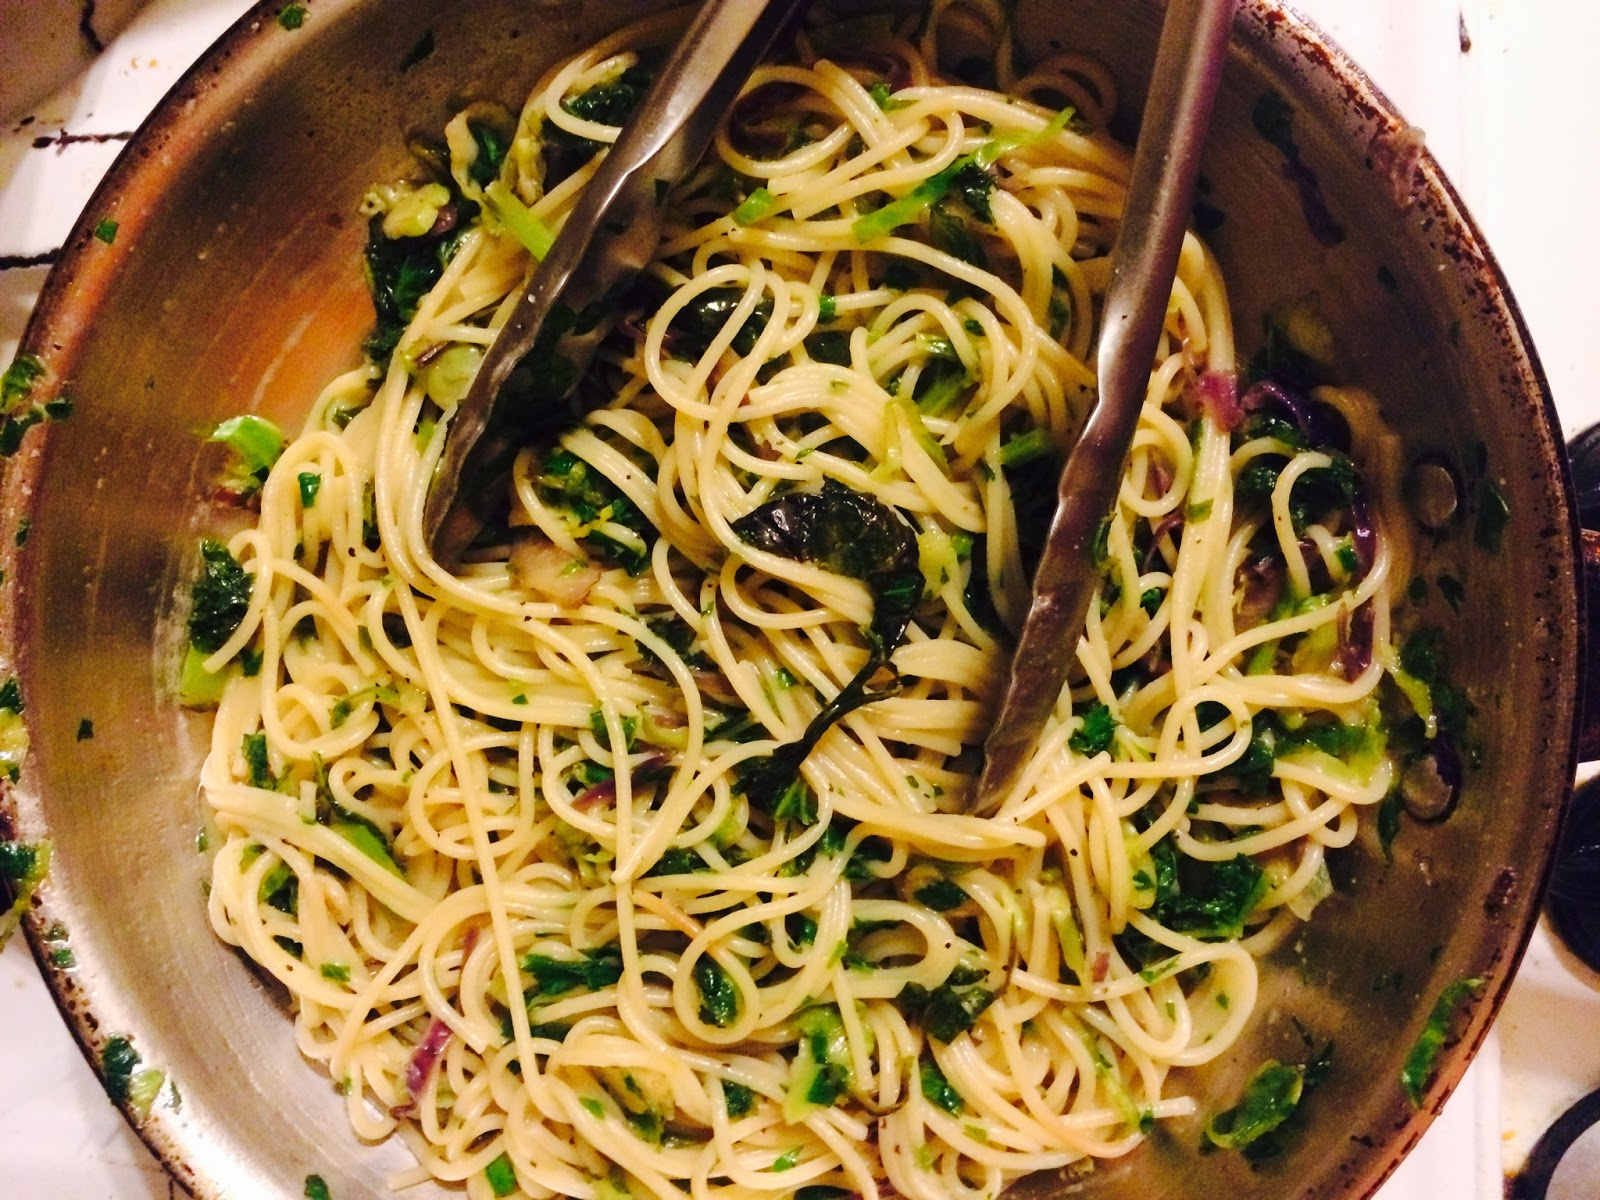 recipe, pasta, vegetables, dinner, eating fabulously, blog, Christopher Stewart, kale, Meatless Monday